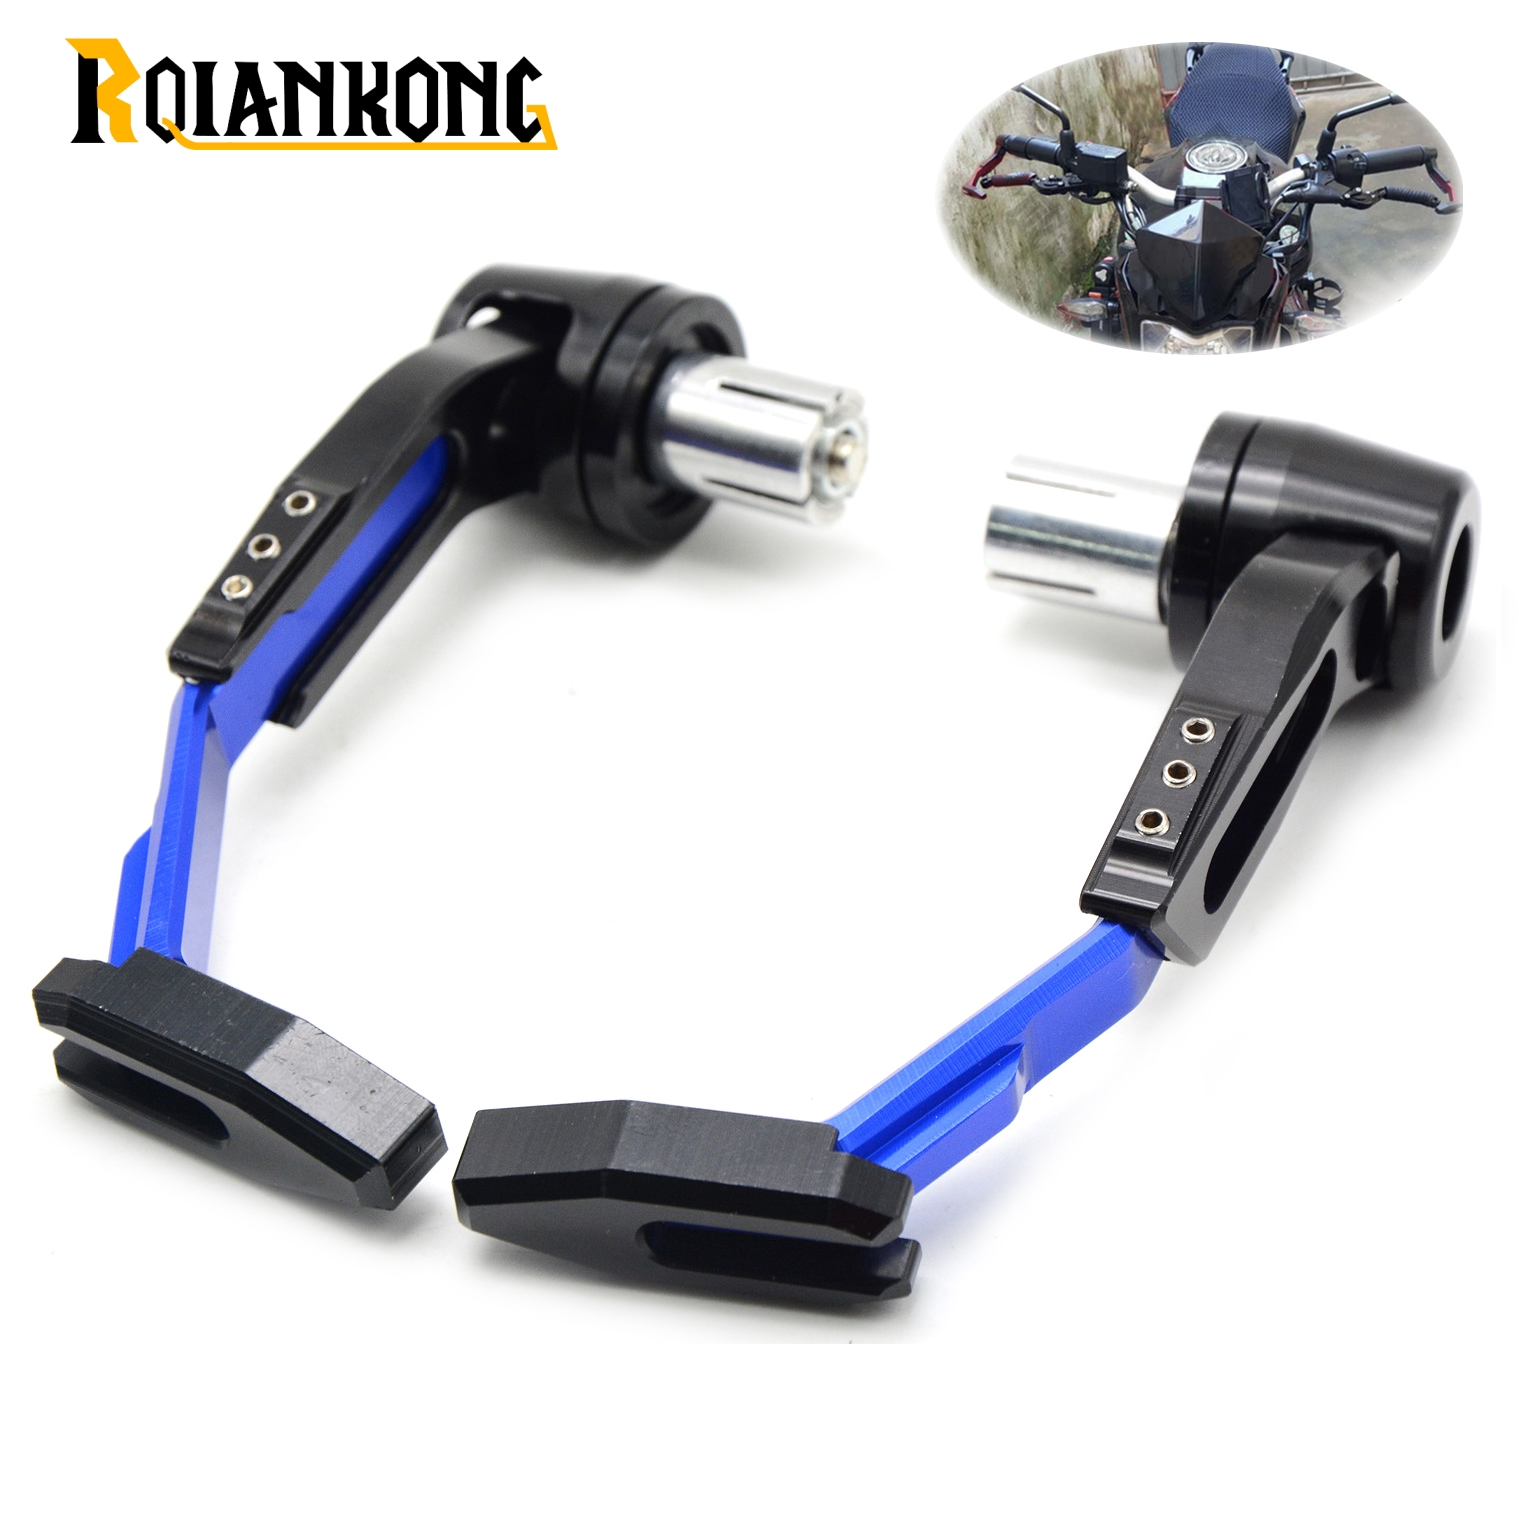 Universal 7/822mm Motorcycle Handlebar Clutch Brake Lever Protect Guard for Yamaha XV 950 R ABS/Racer YBR 125 tmax500 tmax530